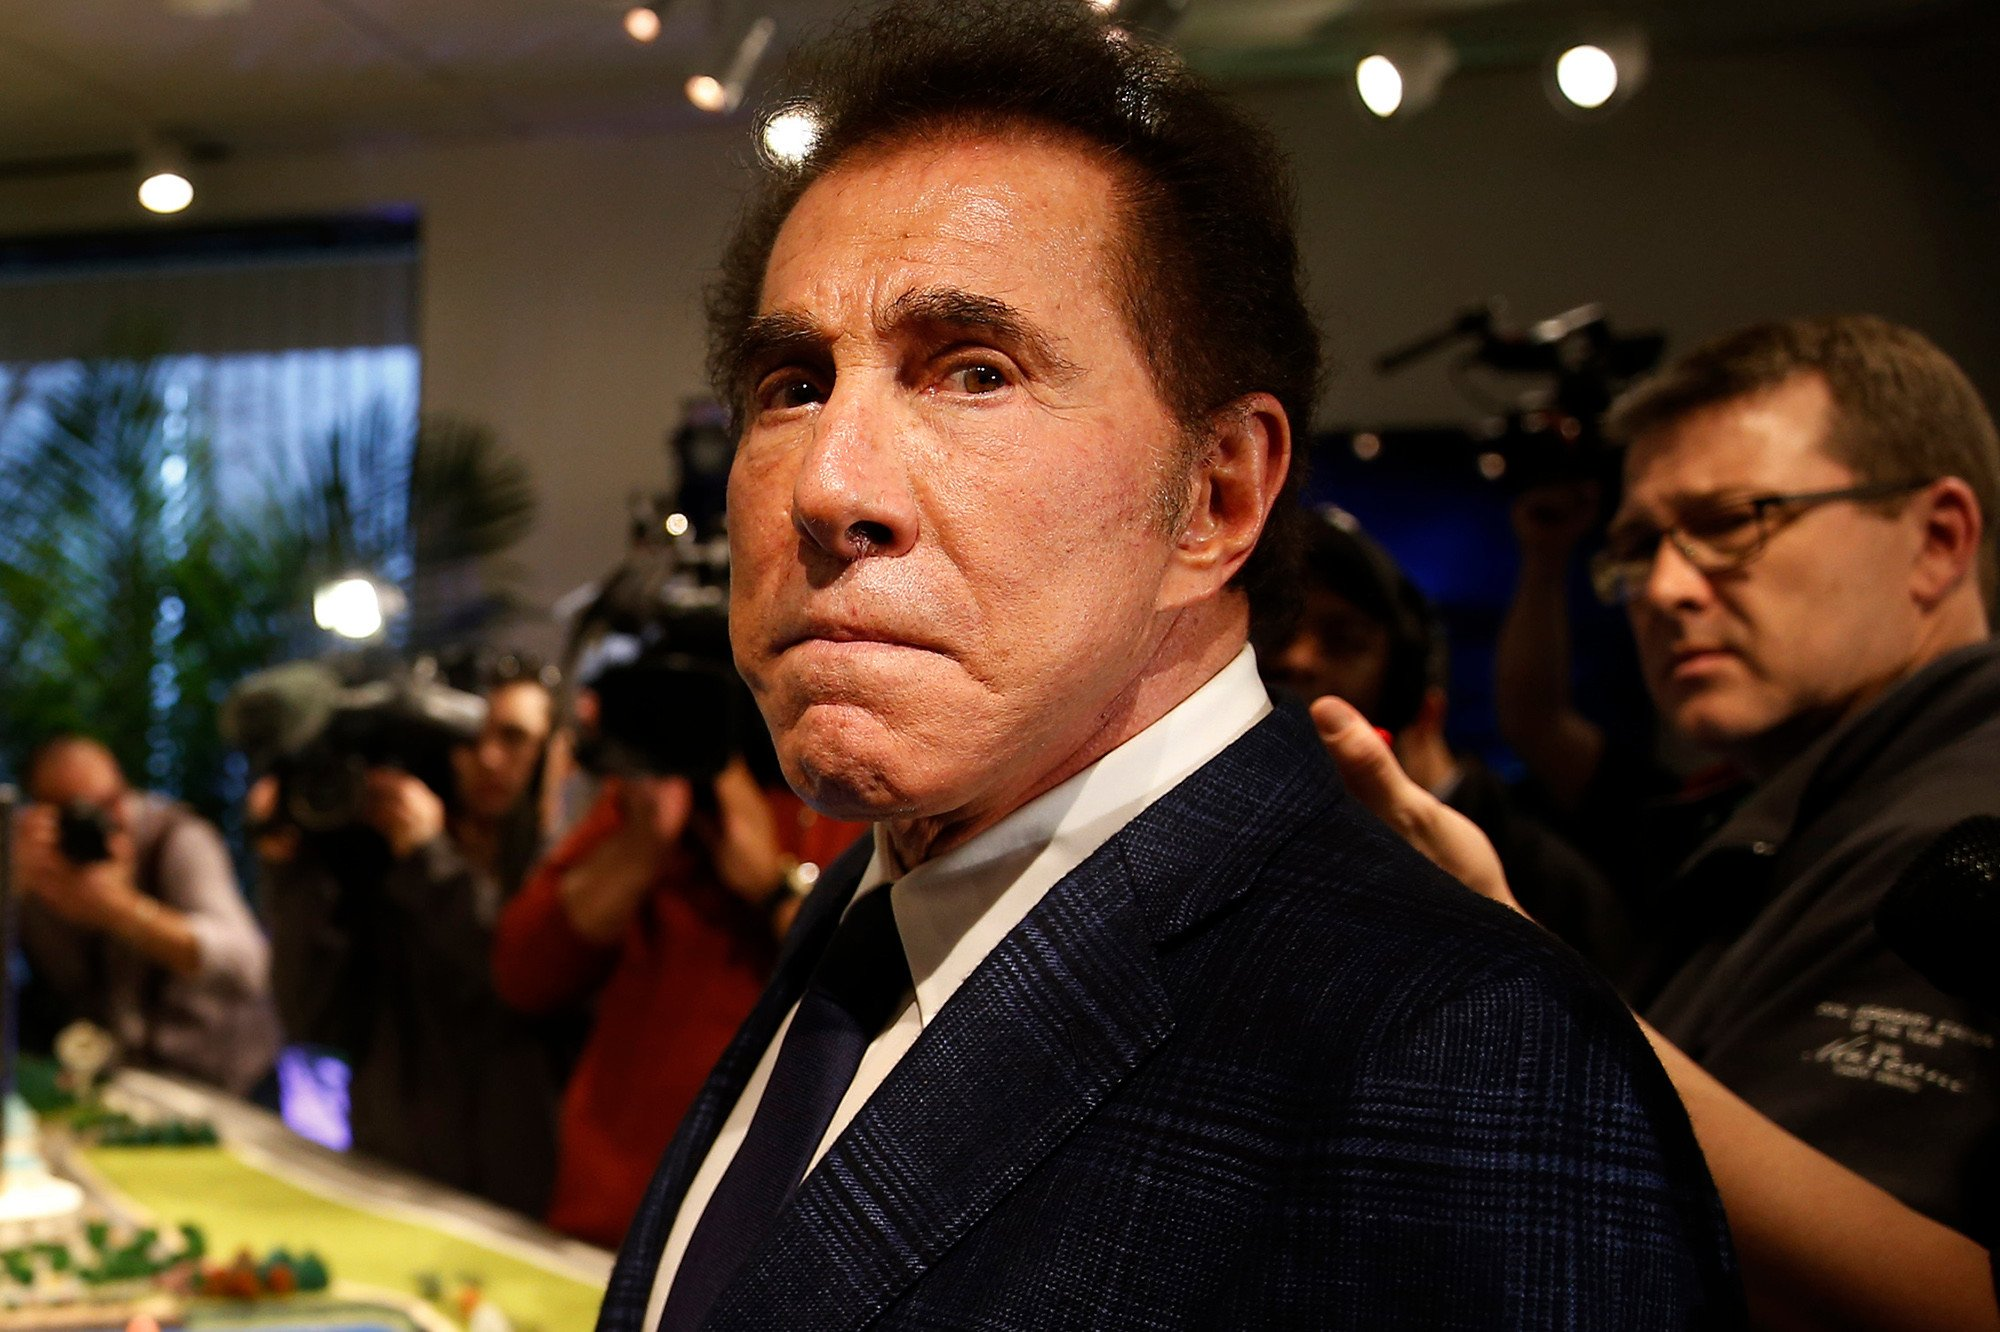 Steve Wynn resigns as CEO of Wynn Resorts after sex harassment claims